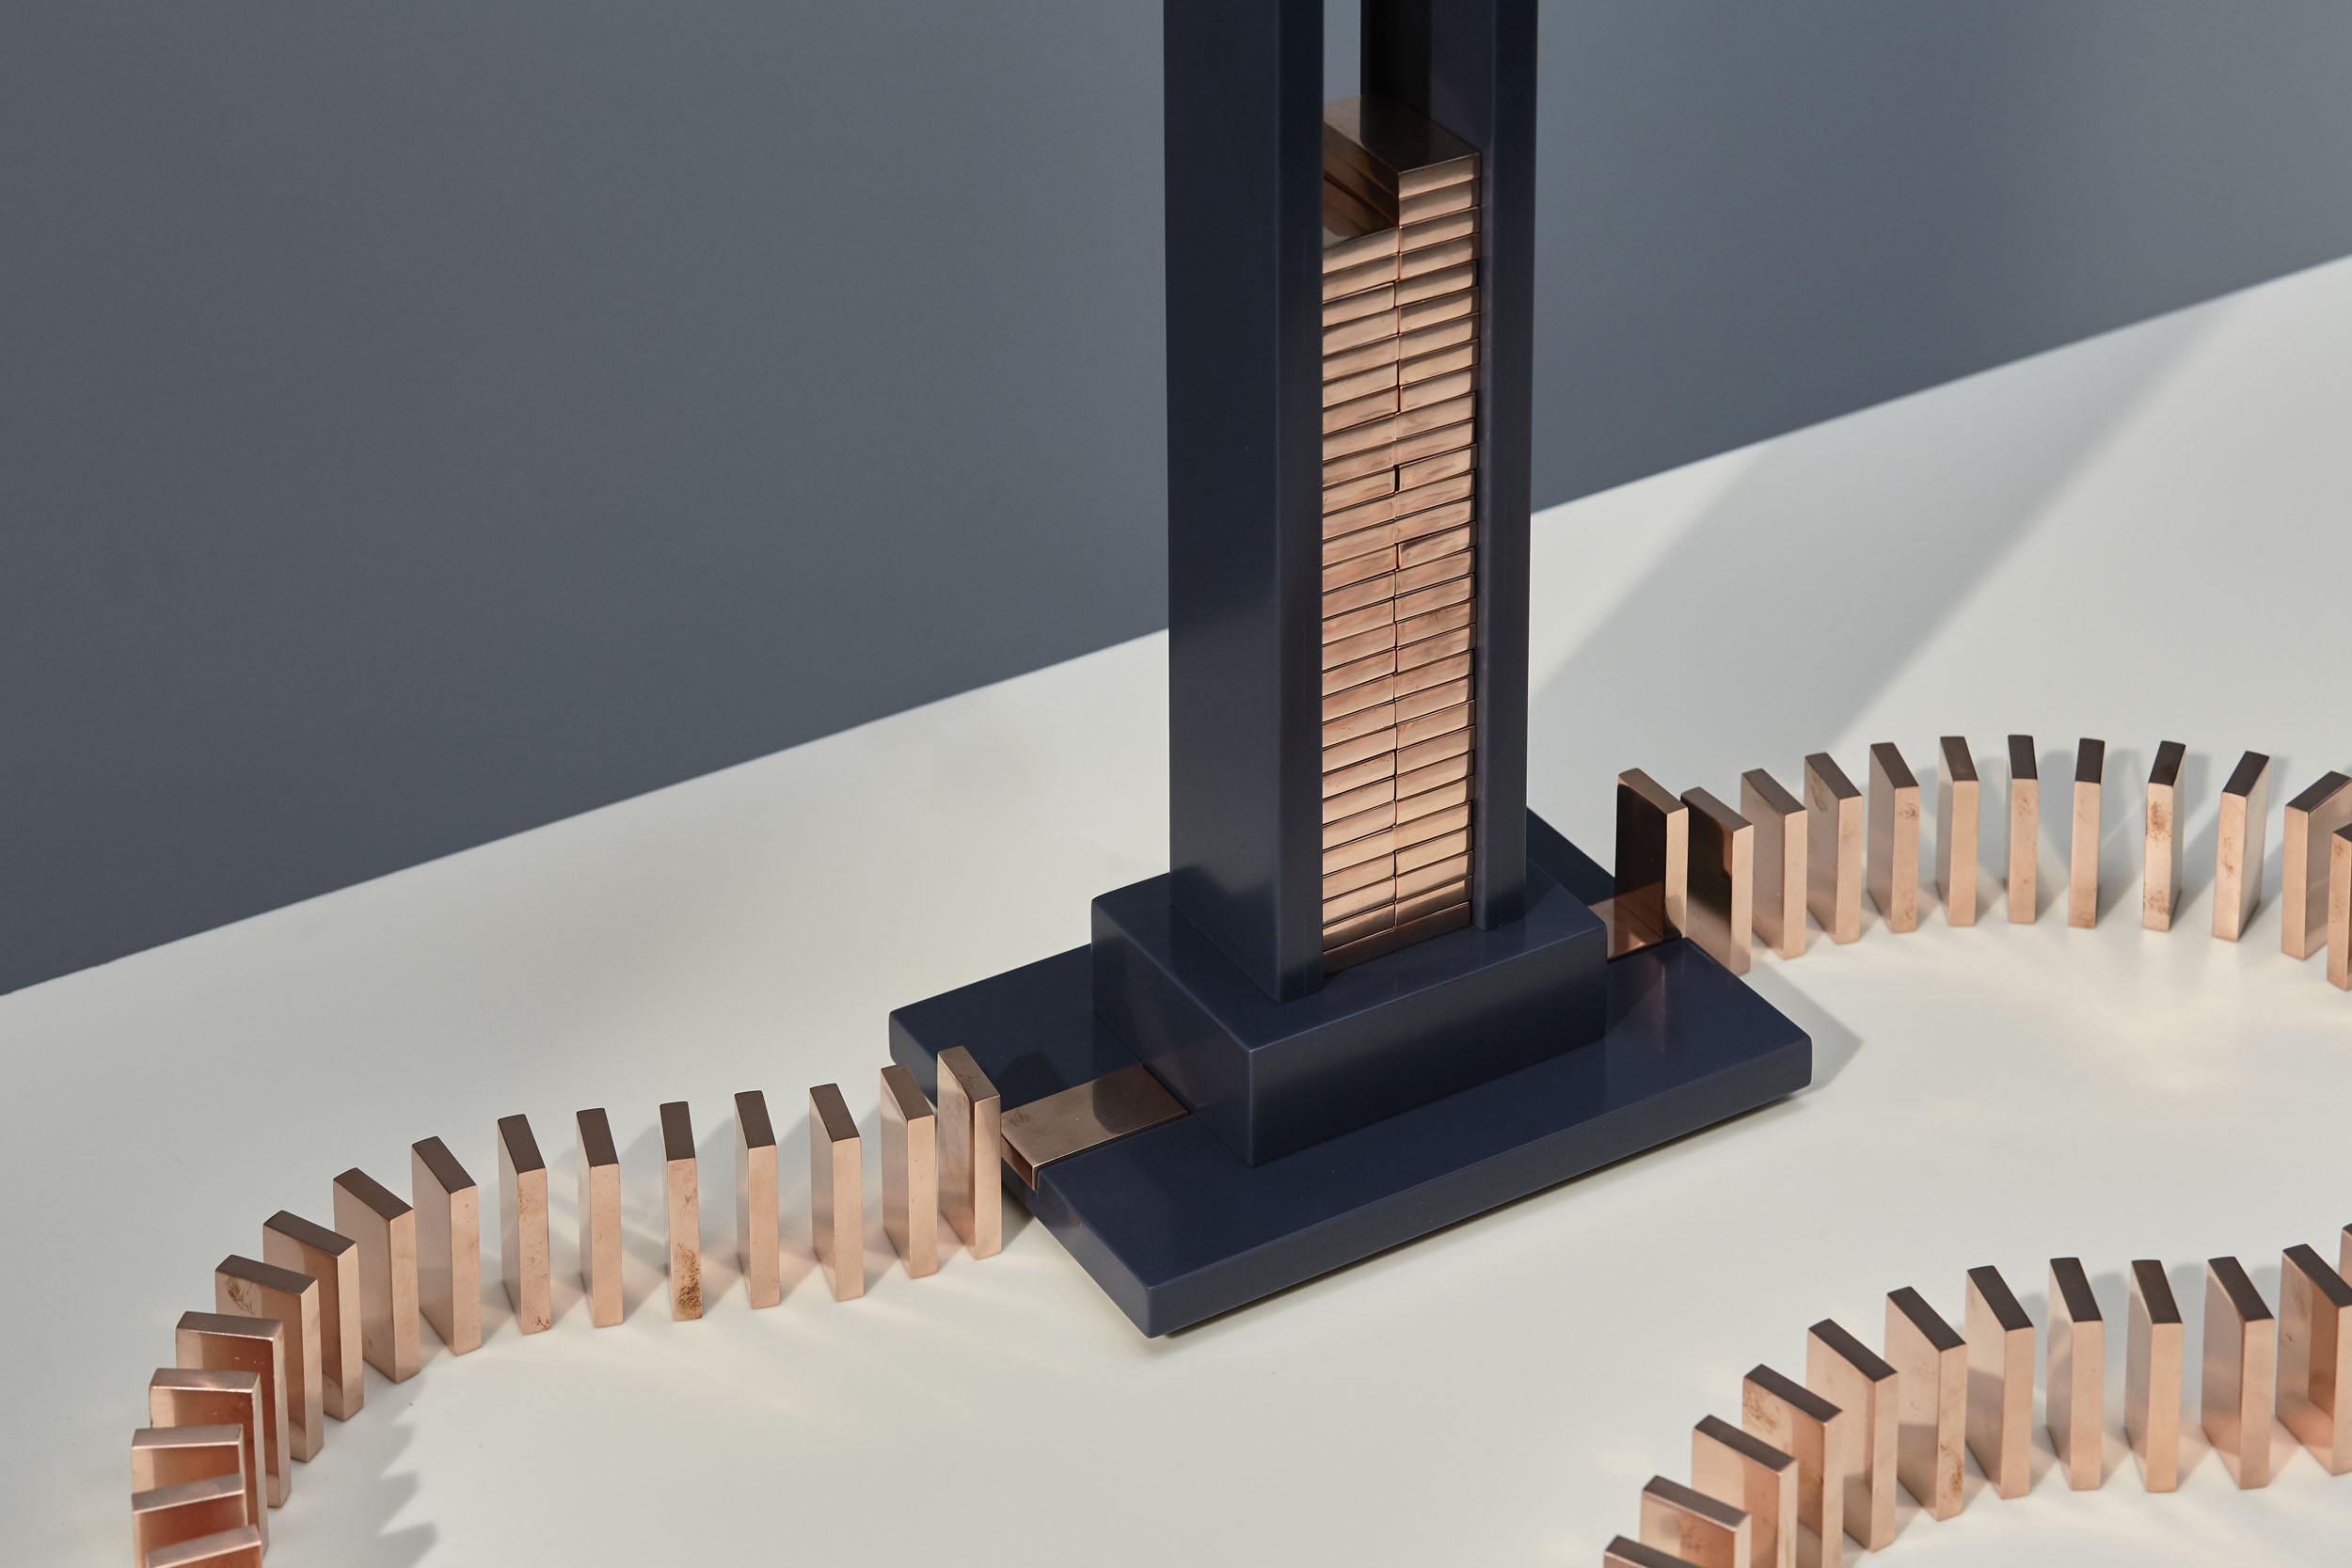 Detail of Domino Light with copper dominos